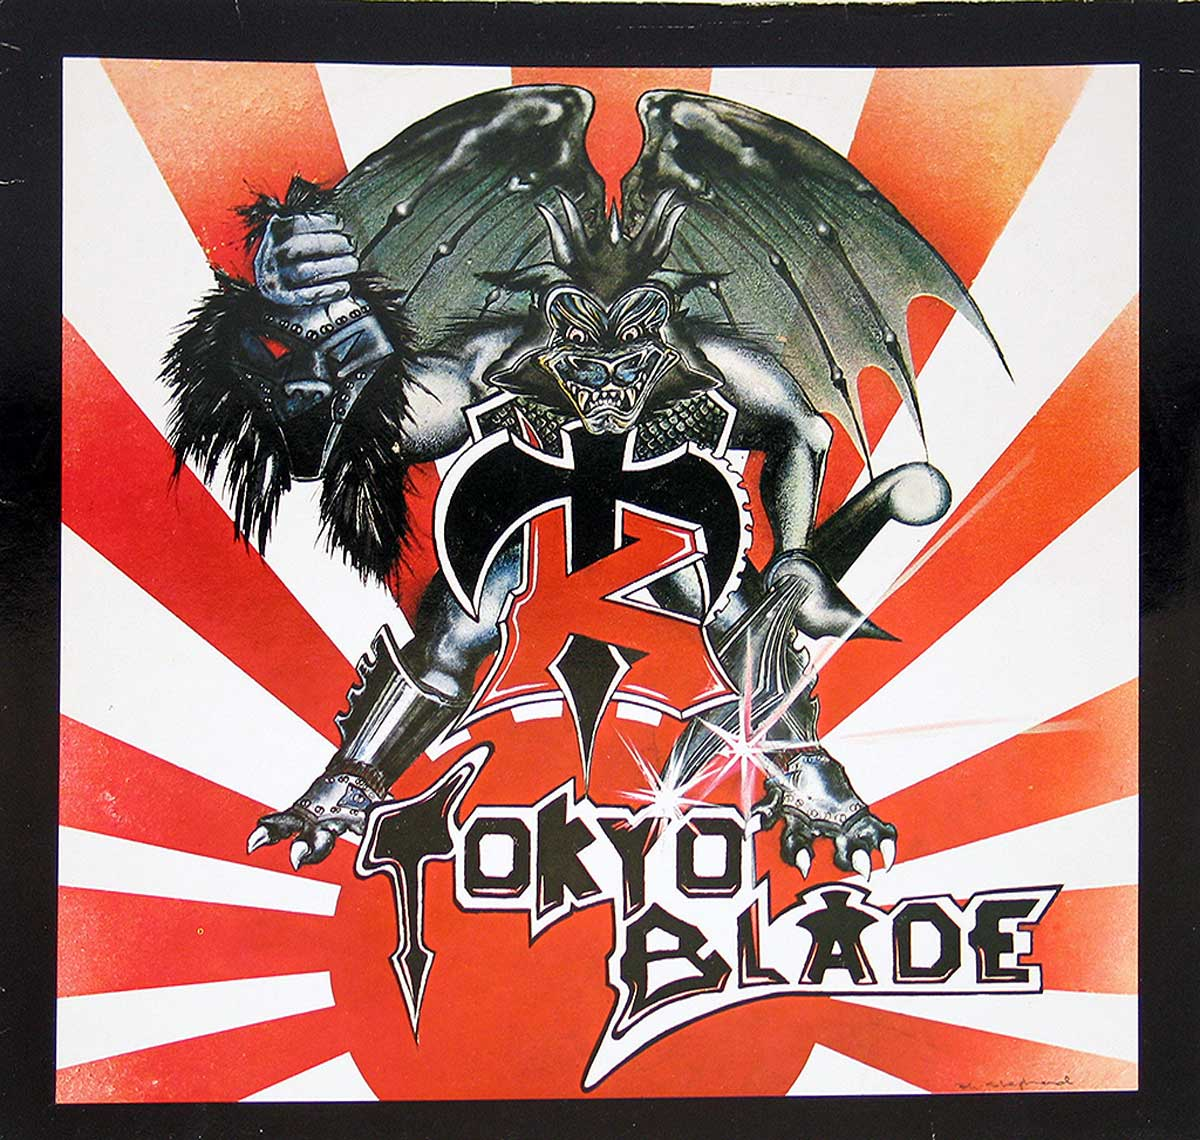 large photo of the album front cover of: Tokyo Blade